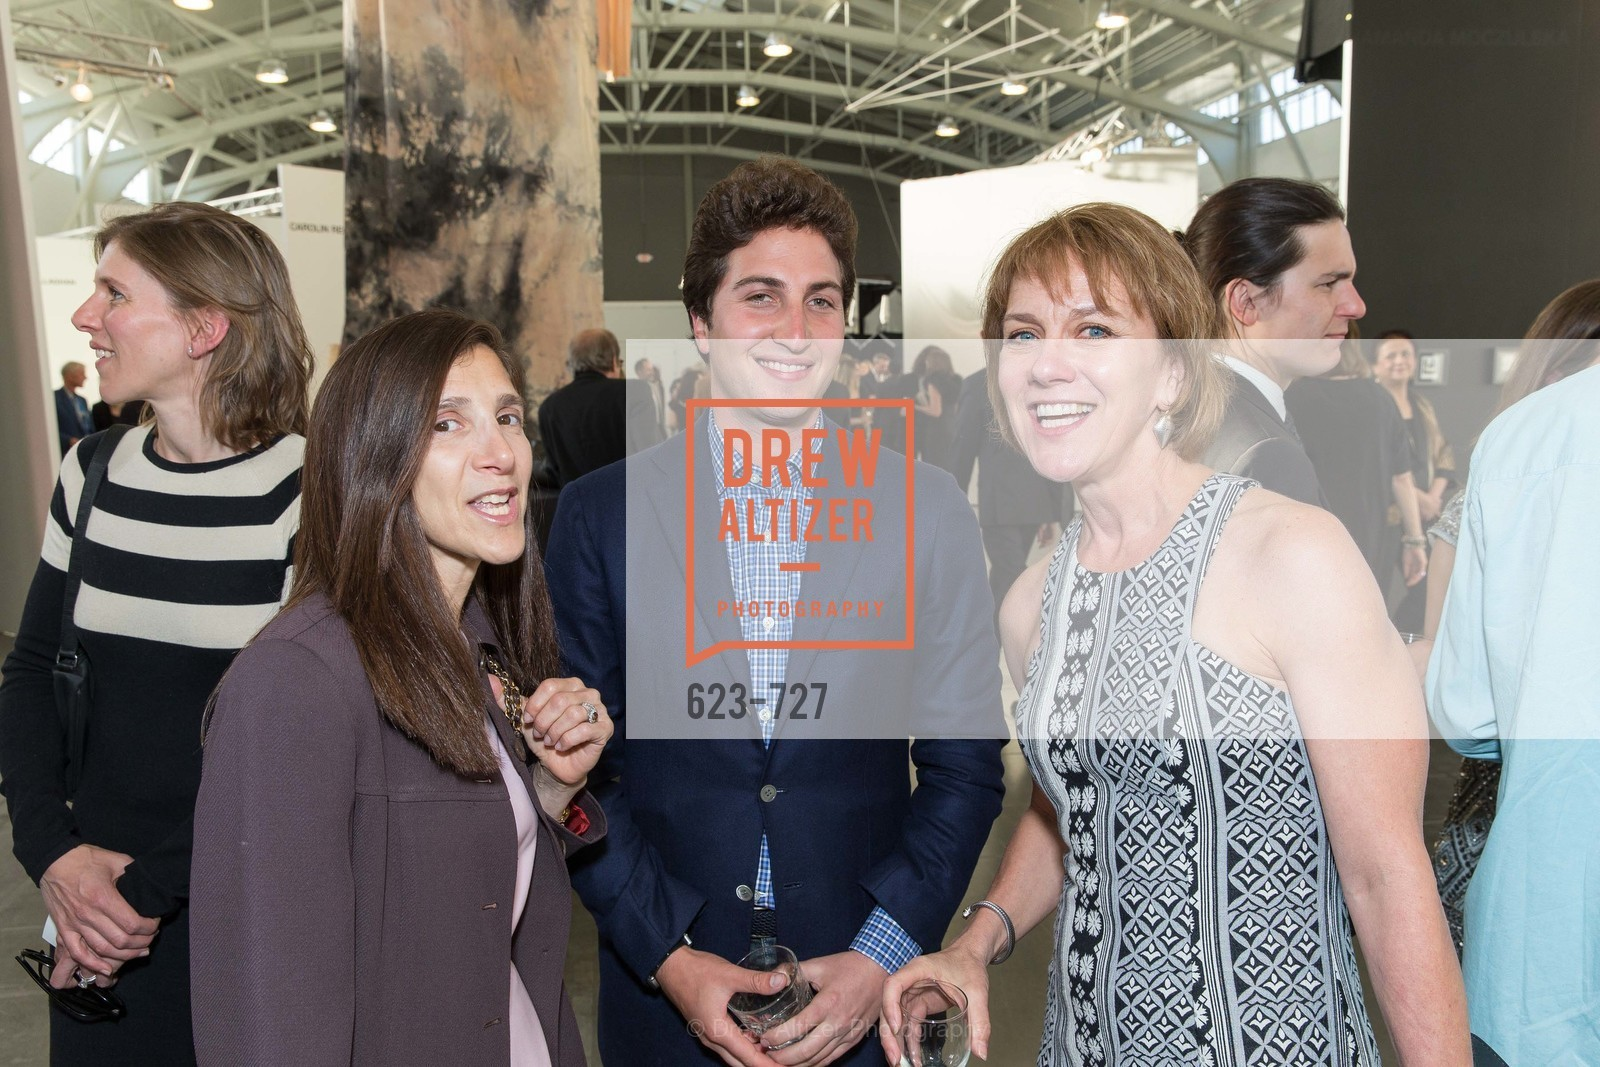 Lisa Podos, Matthew Goldman, Lee Gregory, SAN FRANCISCO ART INSTITUTE Gala Honoring Art Visionary and Advocate ROSELYNE CHROMAN SWIG, US, May 14th, 2015,Drew Altizer, Drew Altizer Photography, full-service agency, private events, San Francisco photographer, photographer california